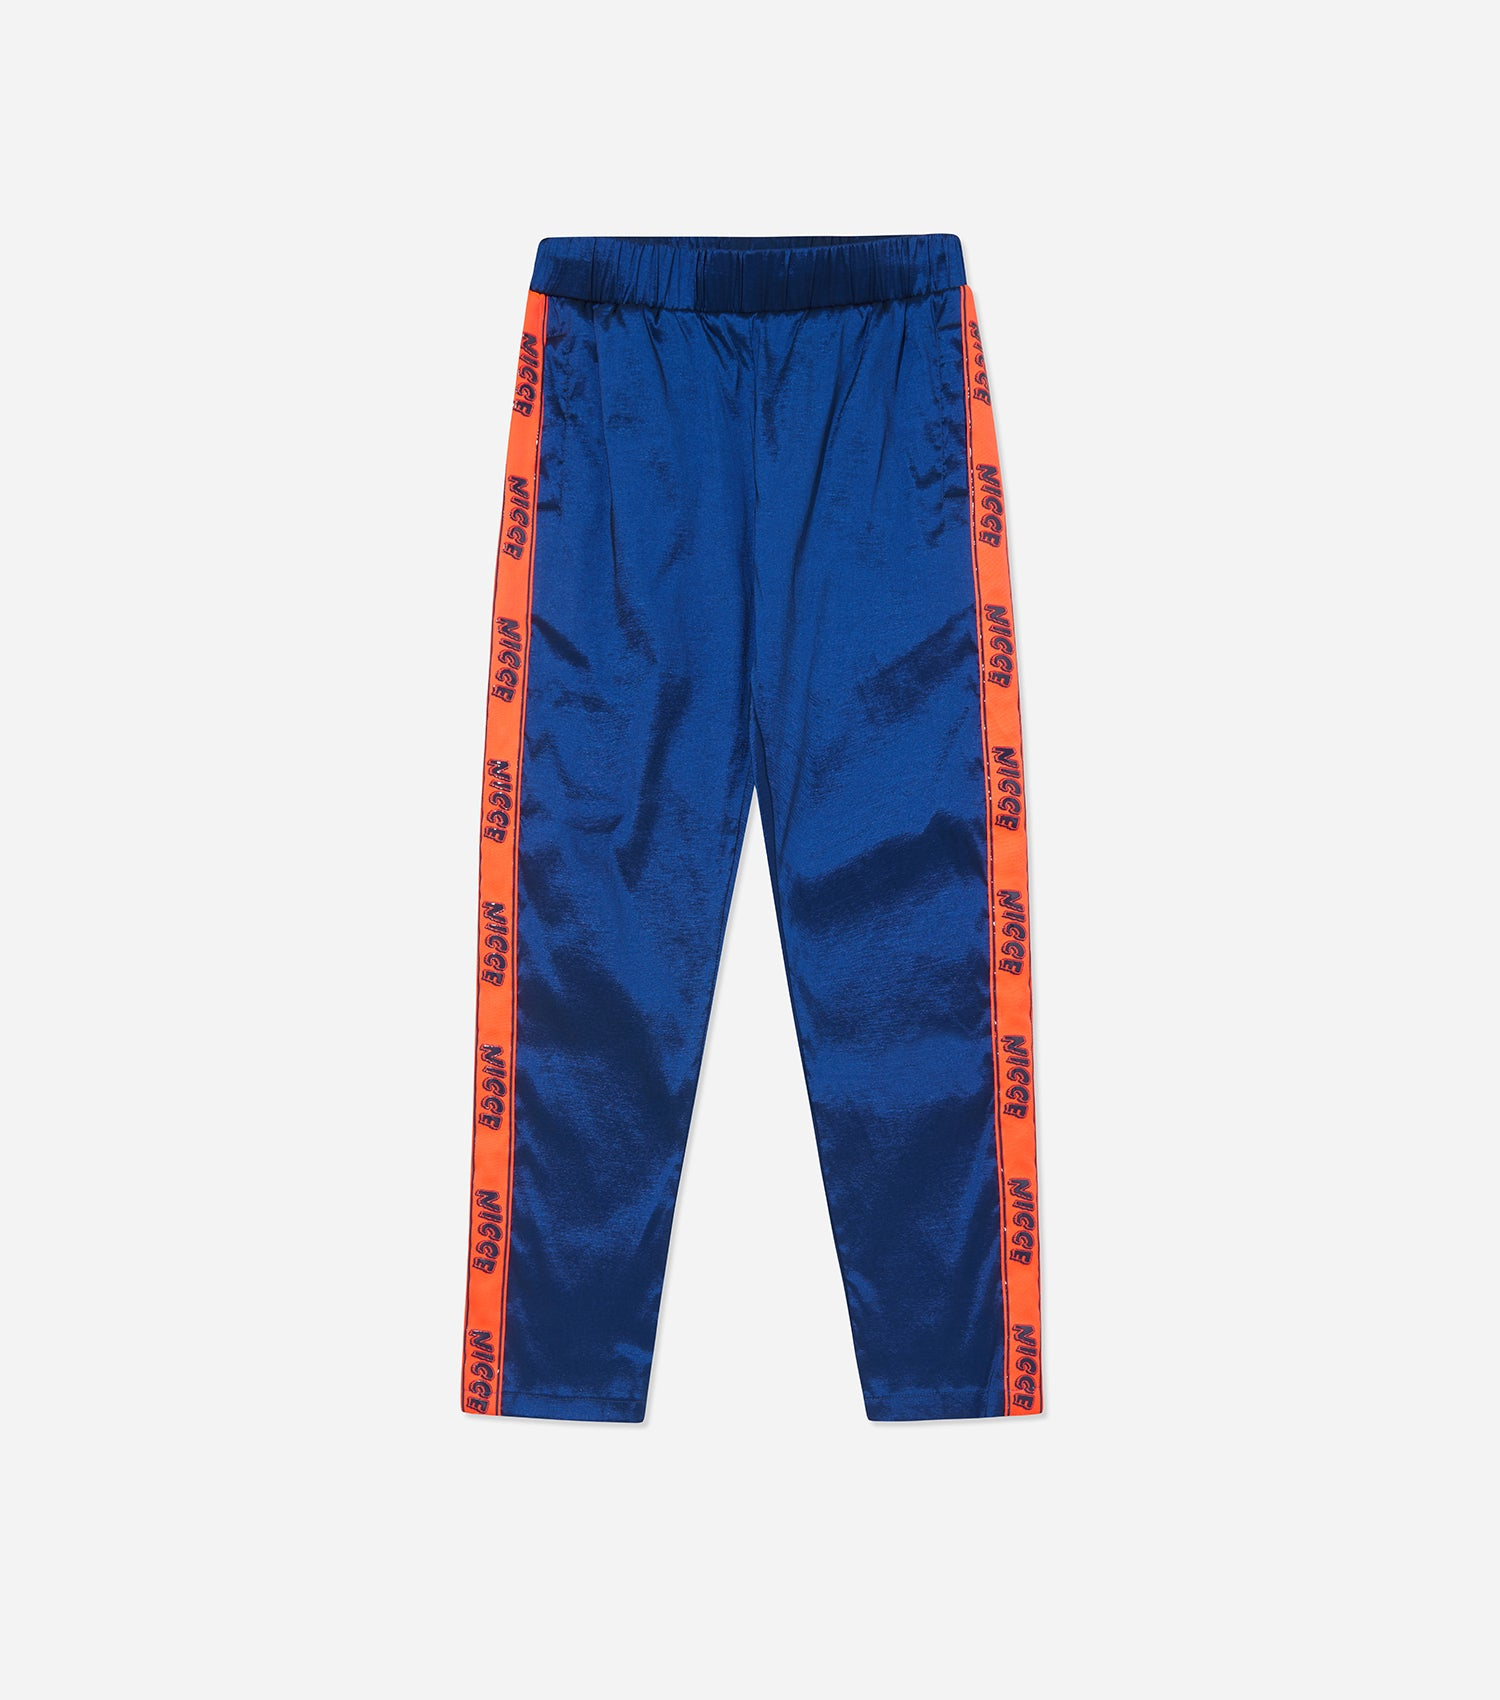 NICCE Womens Duo Slim Track Pants | Blue Depths, Track Pants